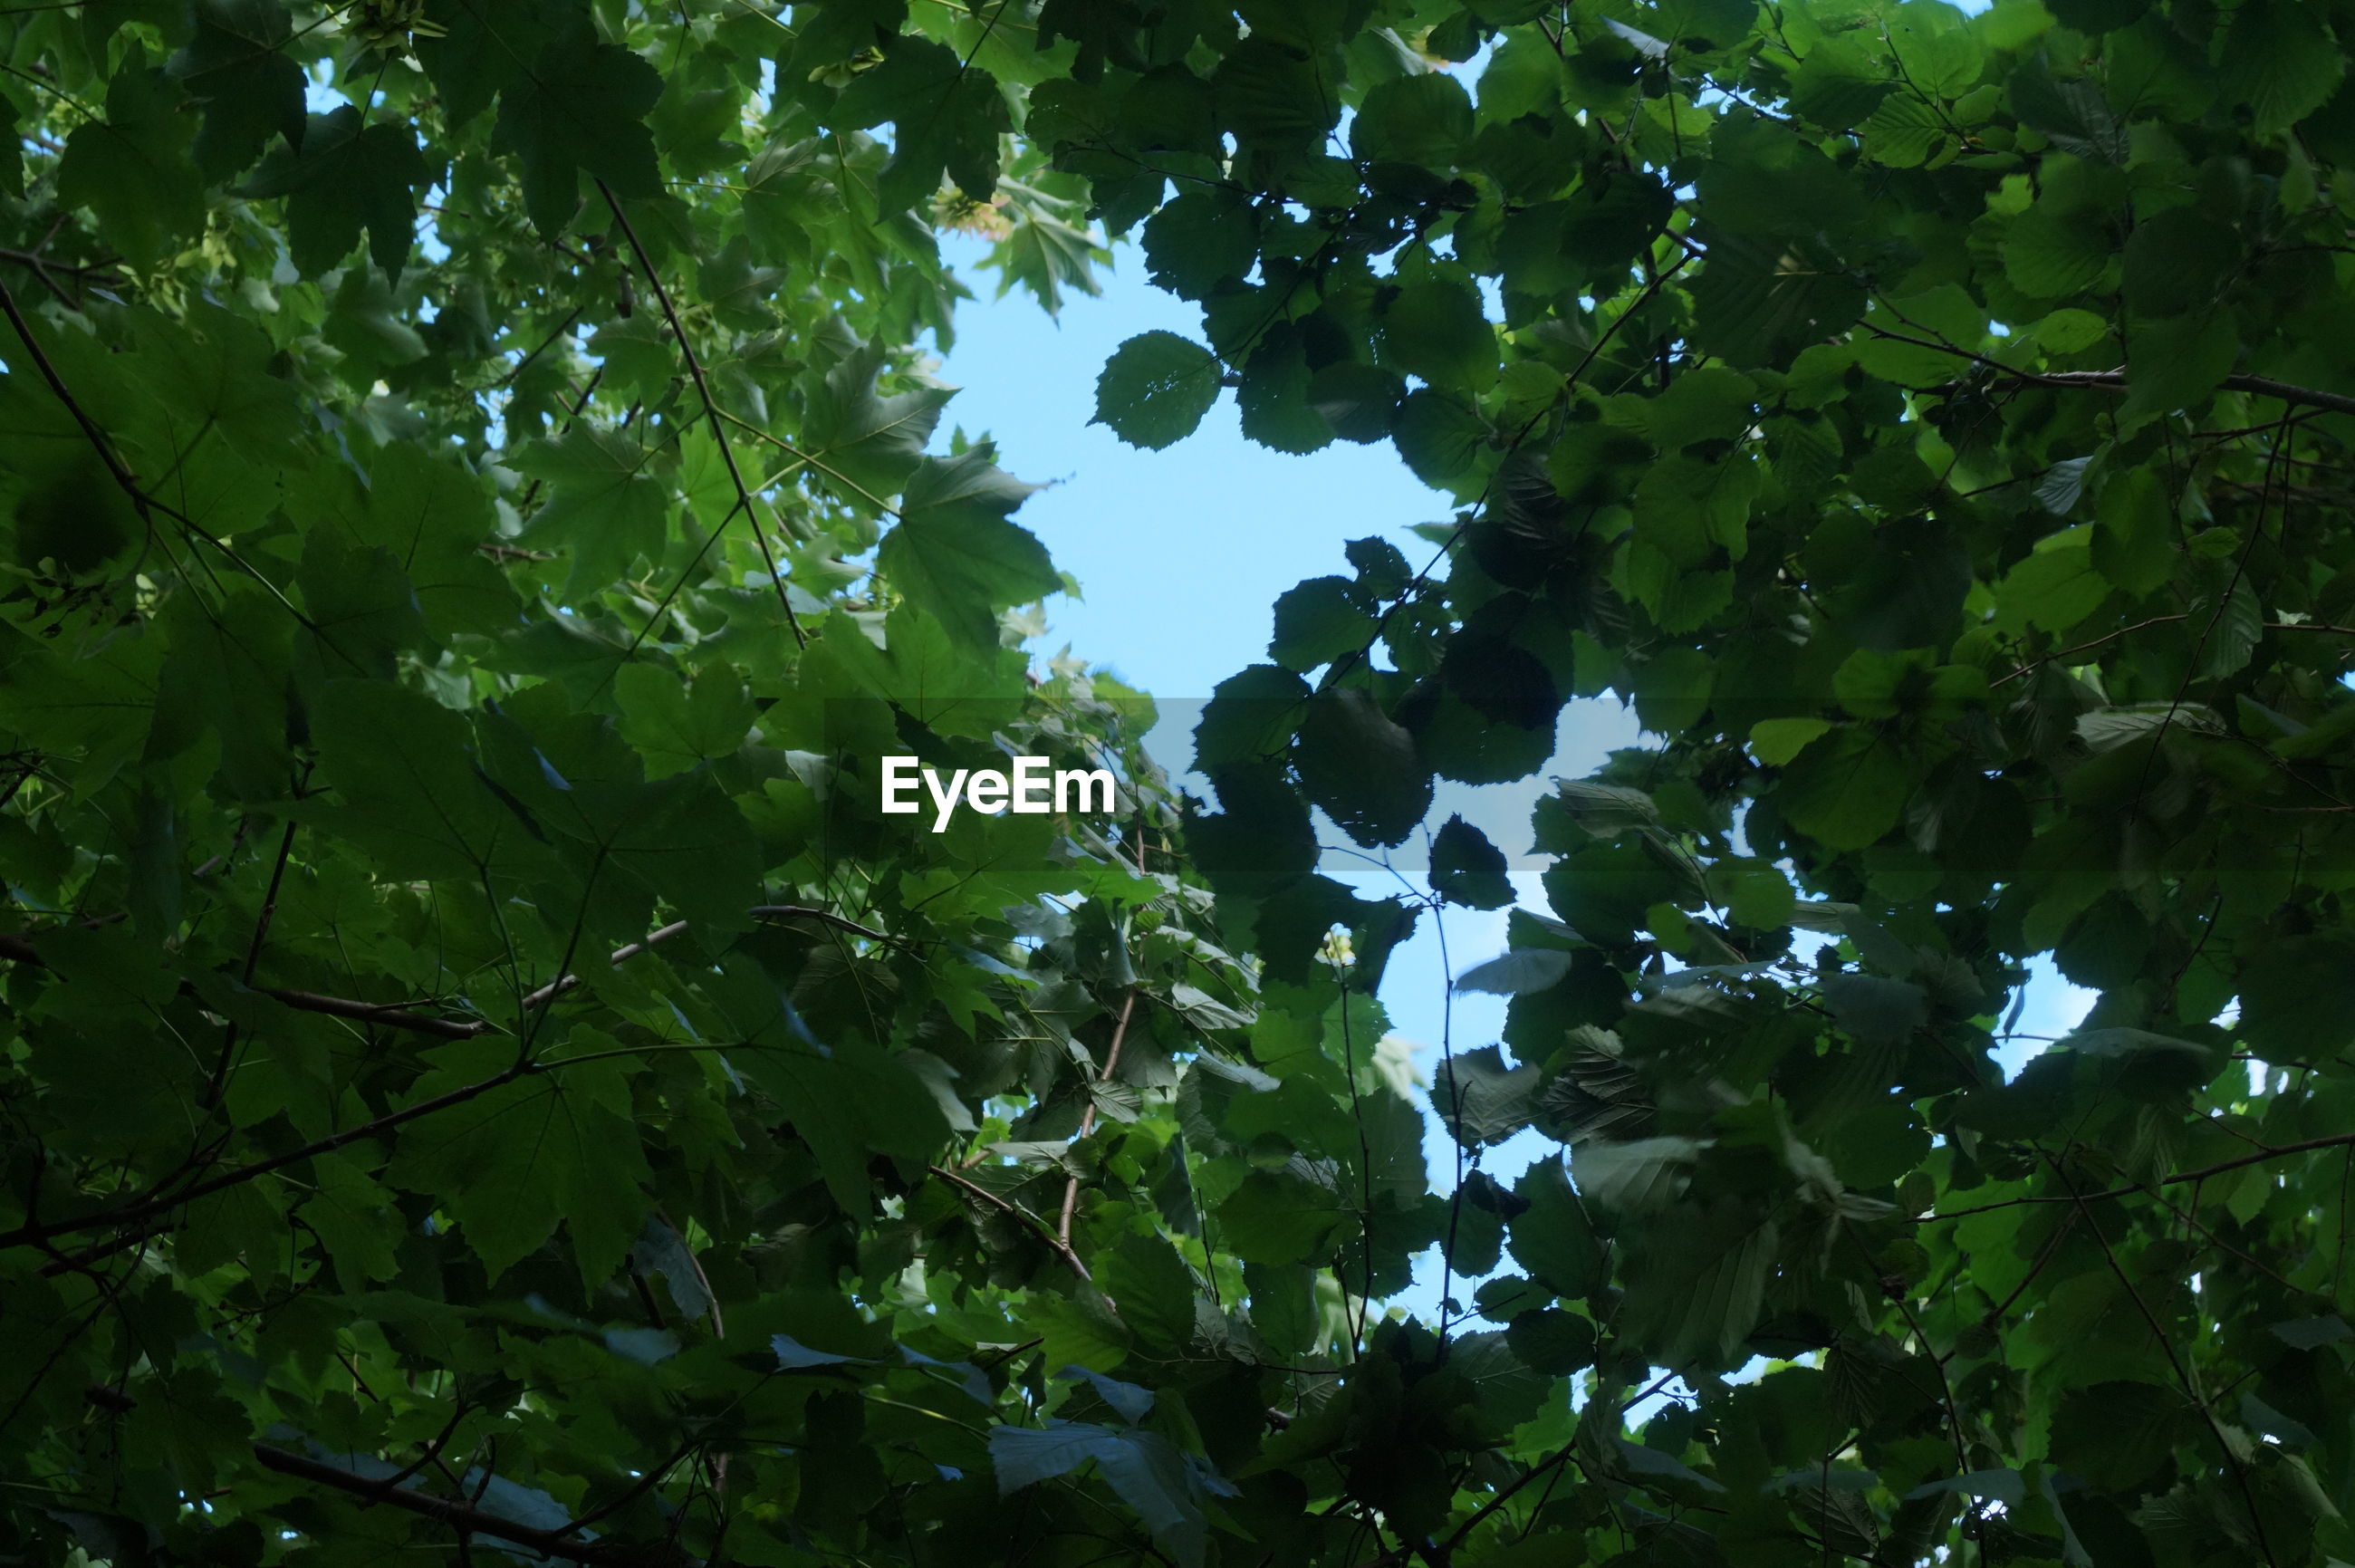 tree, nature, low angle view, growth, leaf, beauty in nature, green color, outdoors, no people, day, branch, plant, scenics, fruit, full frame, sky, clear sky, freshness